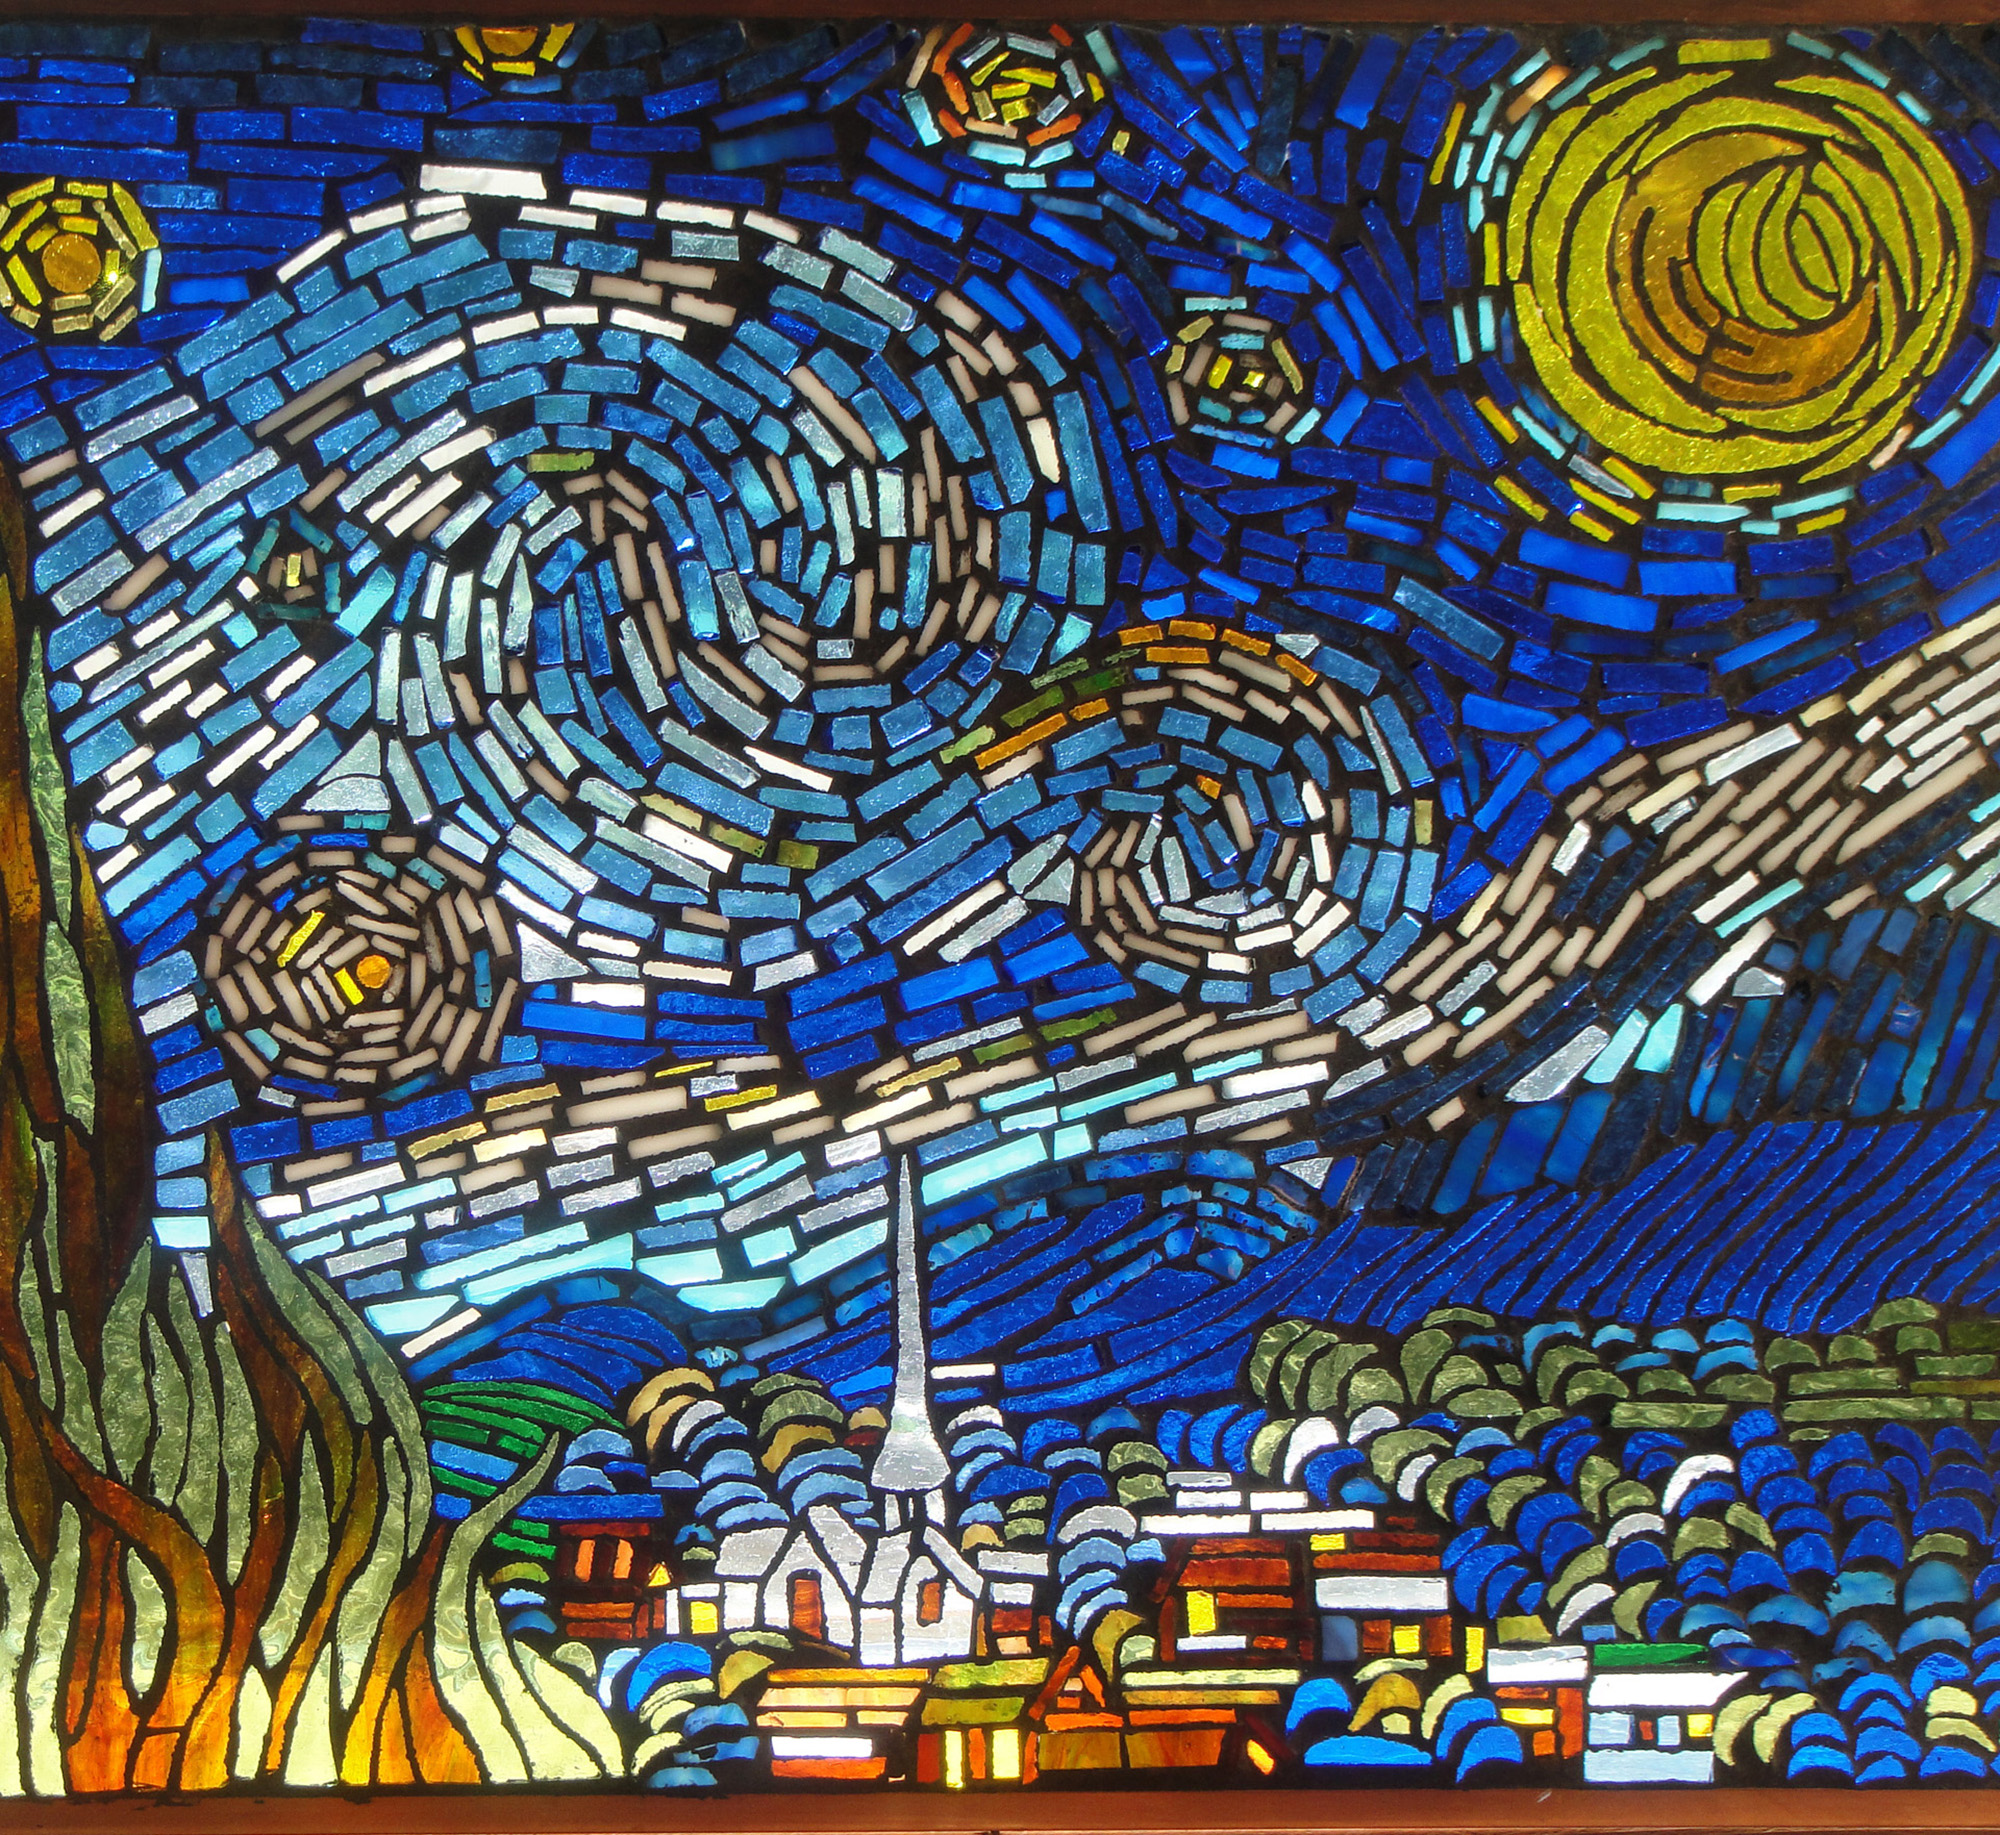 Courtesy of Waco Cultural Arts Fest - Stained Glass by Cindy Radle